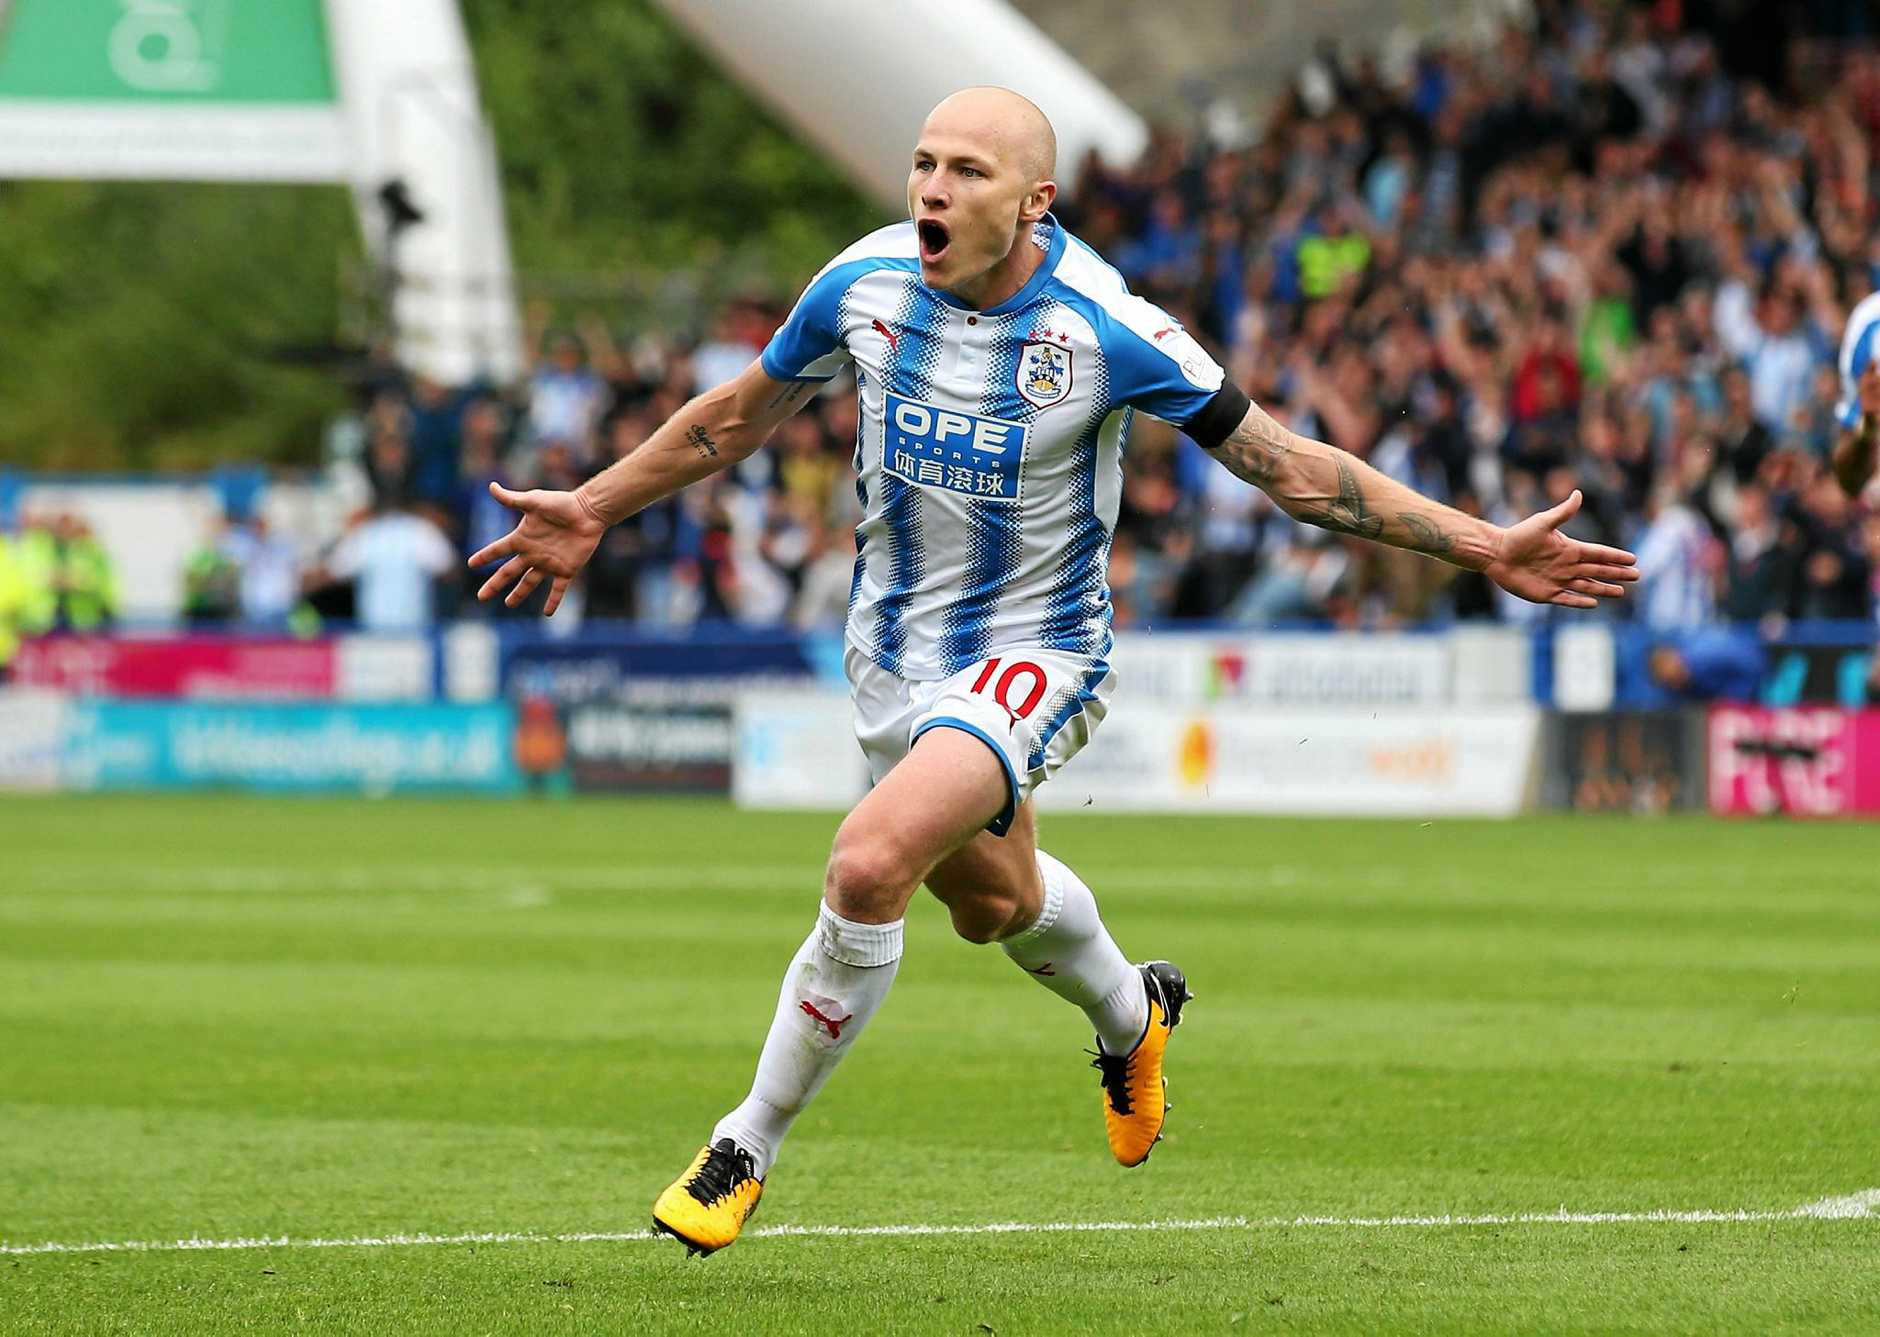 Aaron Mooy of Huddersfield Town celebrates scoring the winning goal against Newcastle.